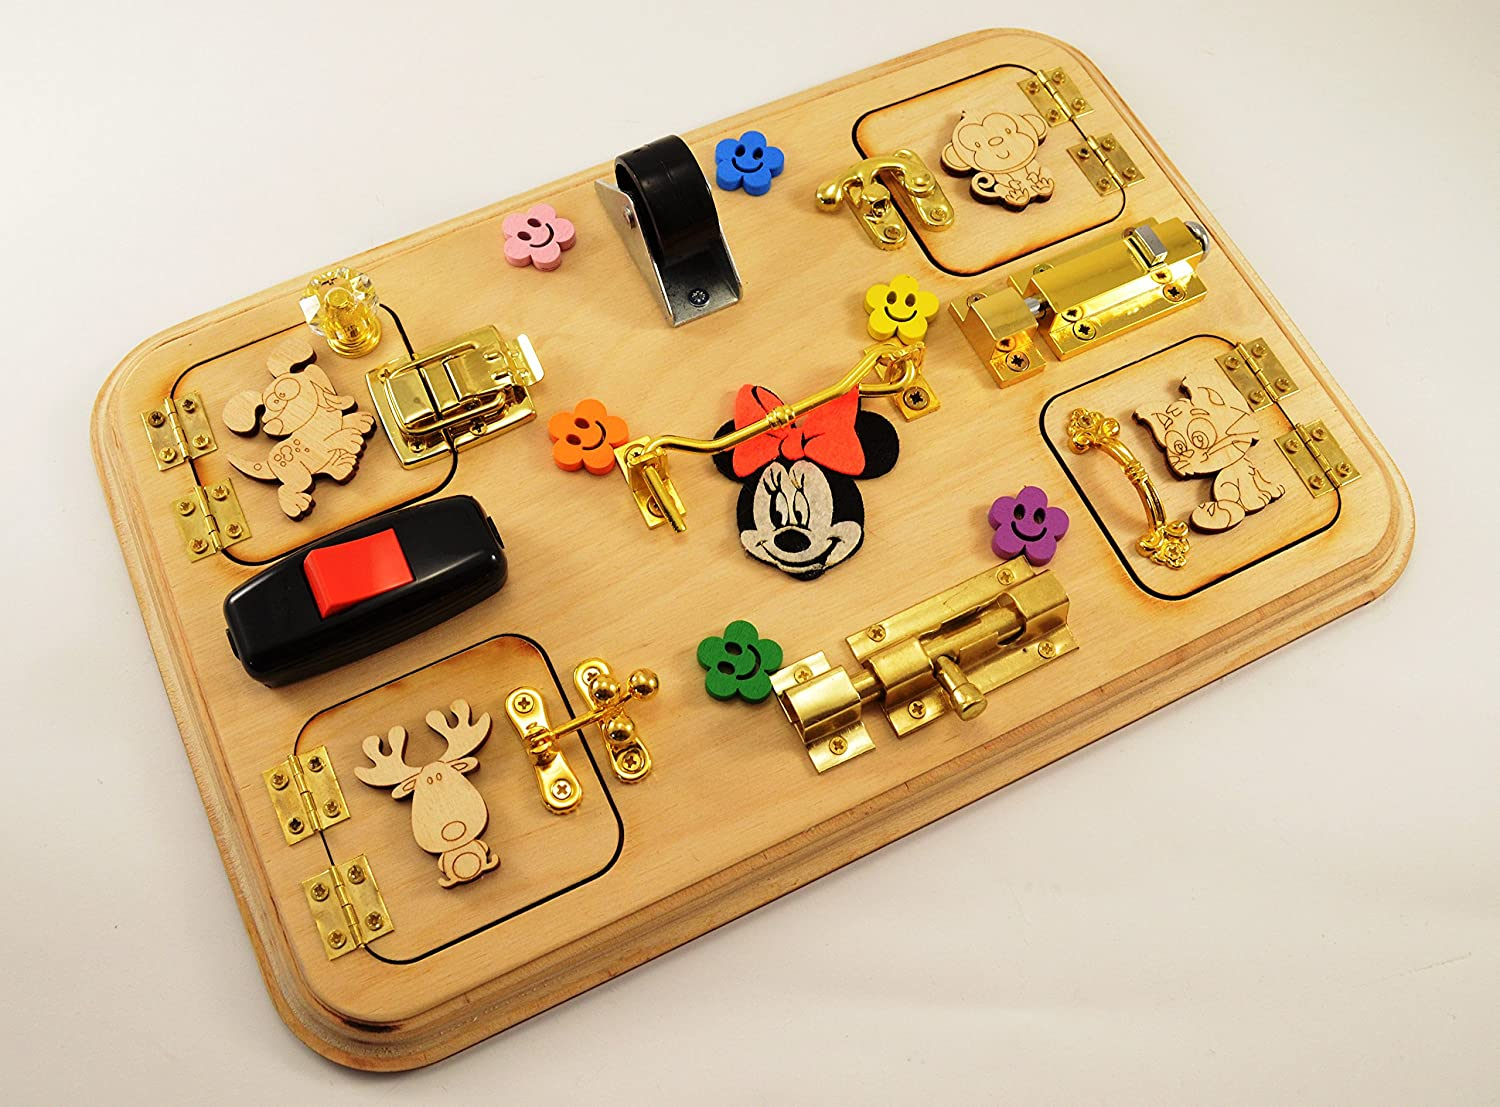 Travel busy board Mickey mouse toys Busy board for toddler Baby toys Christmas in july Gift 1st Sensory board Busy board Montessori toys